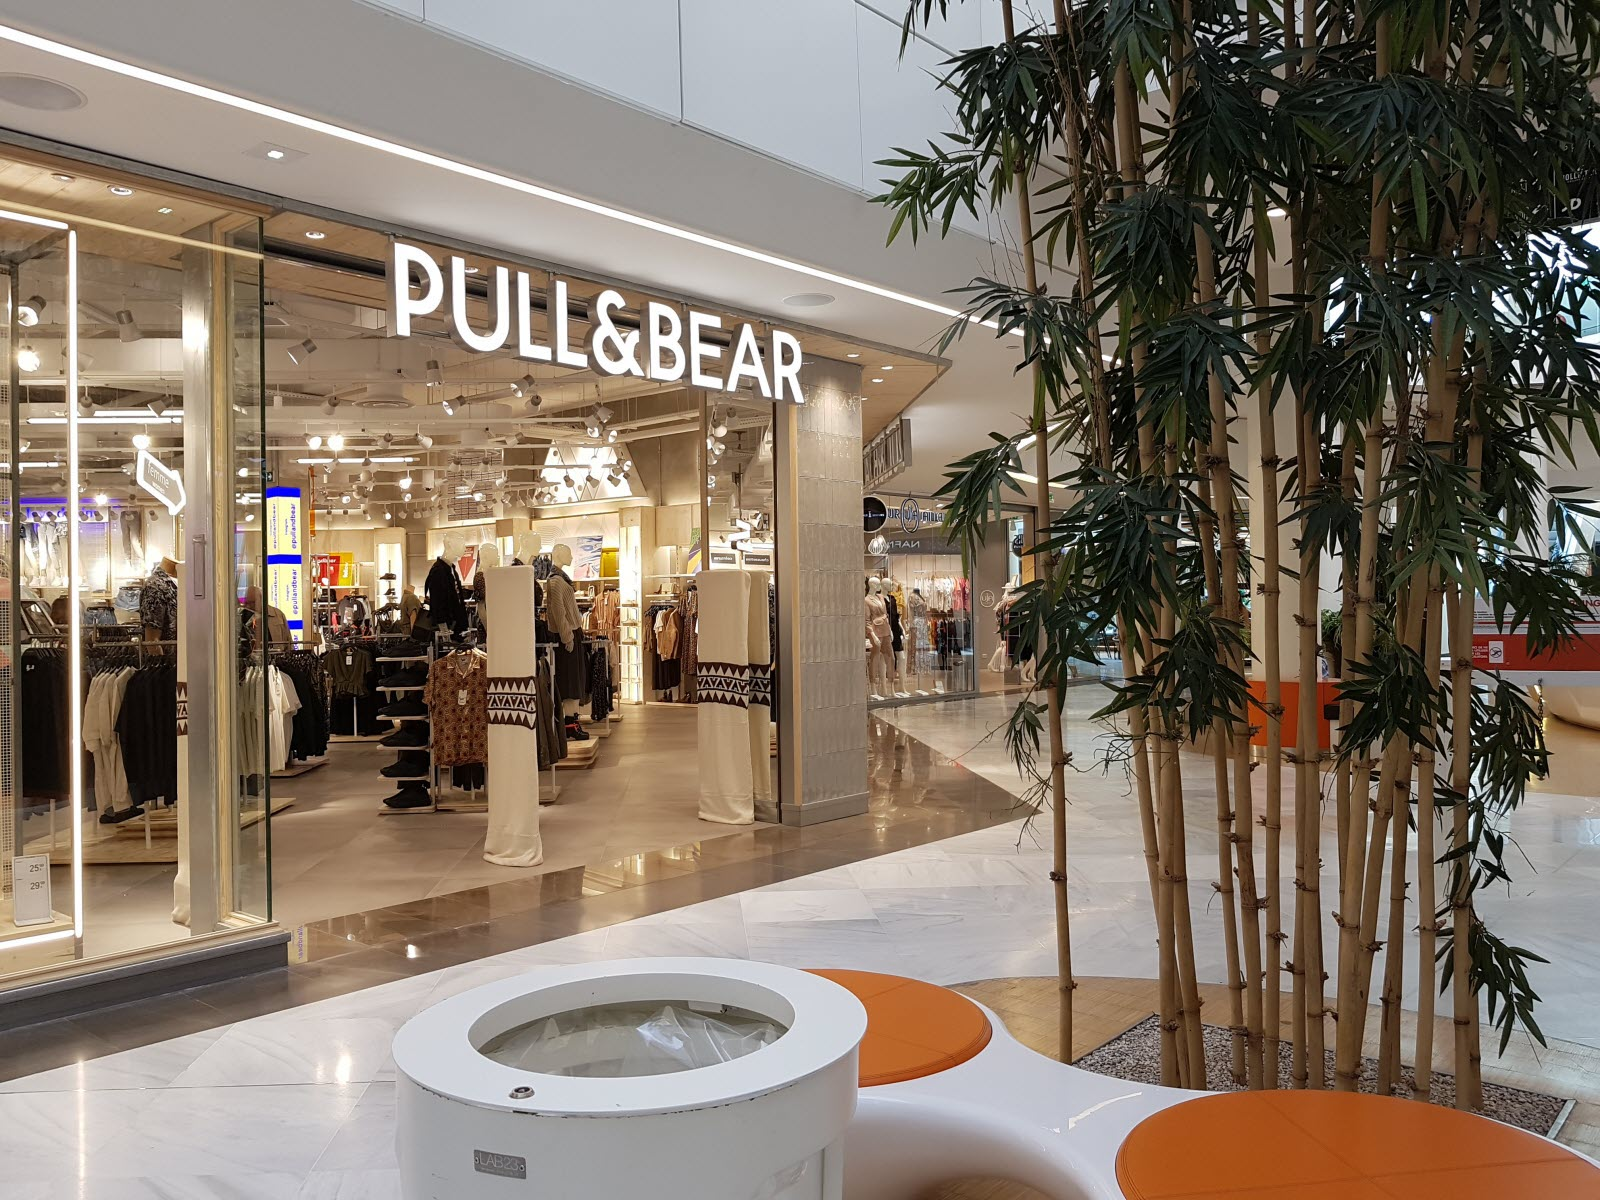 commerce le magasin pull and bear a